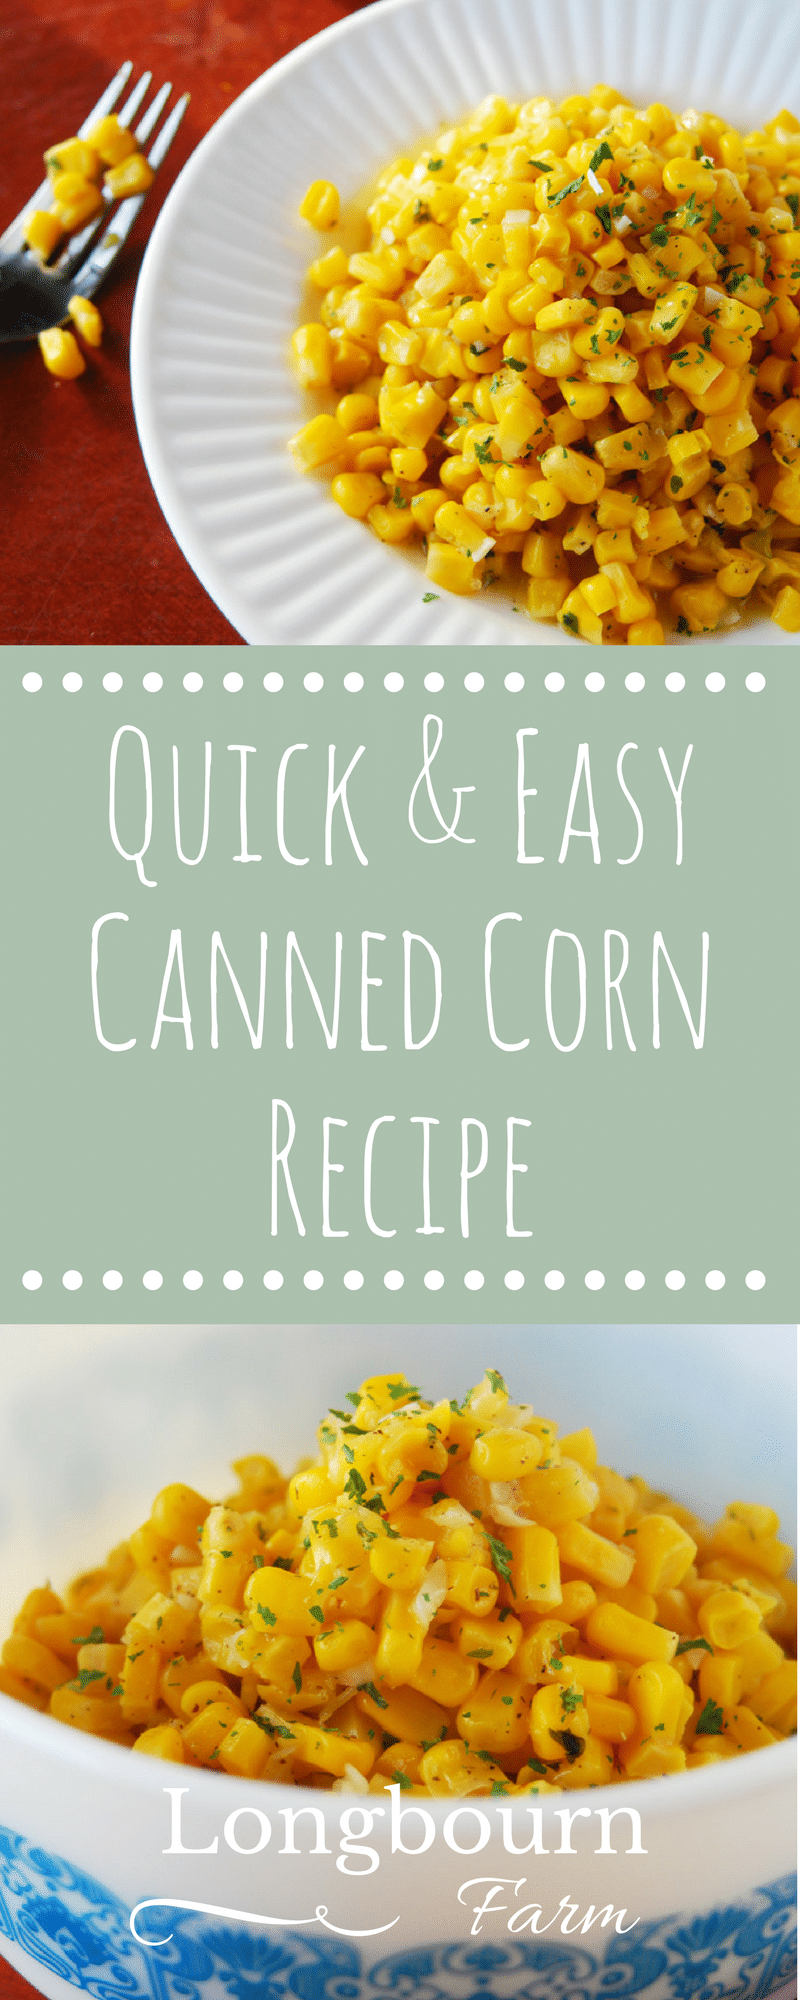 Canned corn doesn't have to be plain and boring. Check out this quick and easy canned corn recipe. You'll have a delicious and nutrition side in minutes!